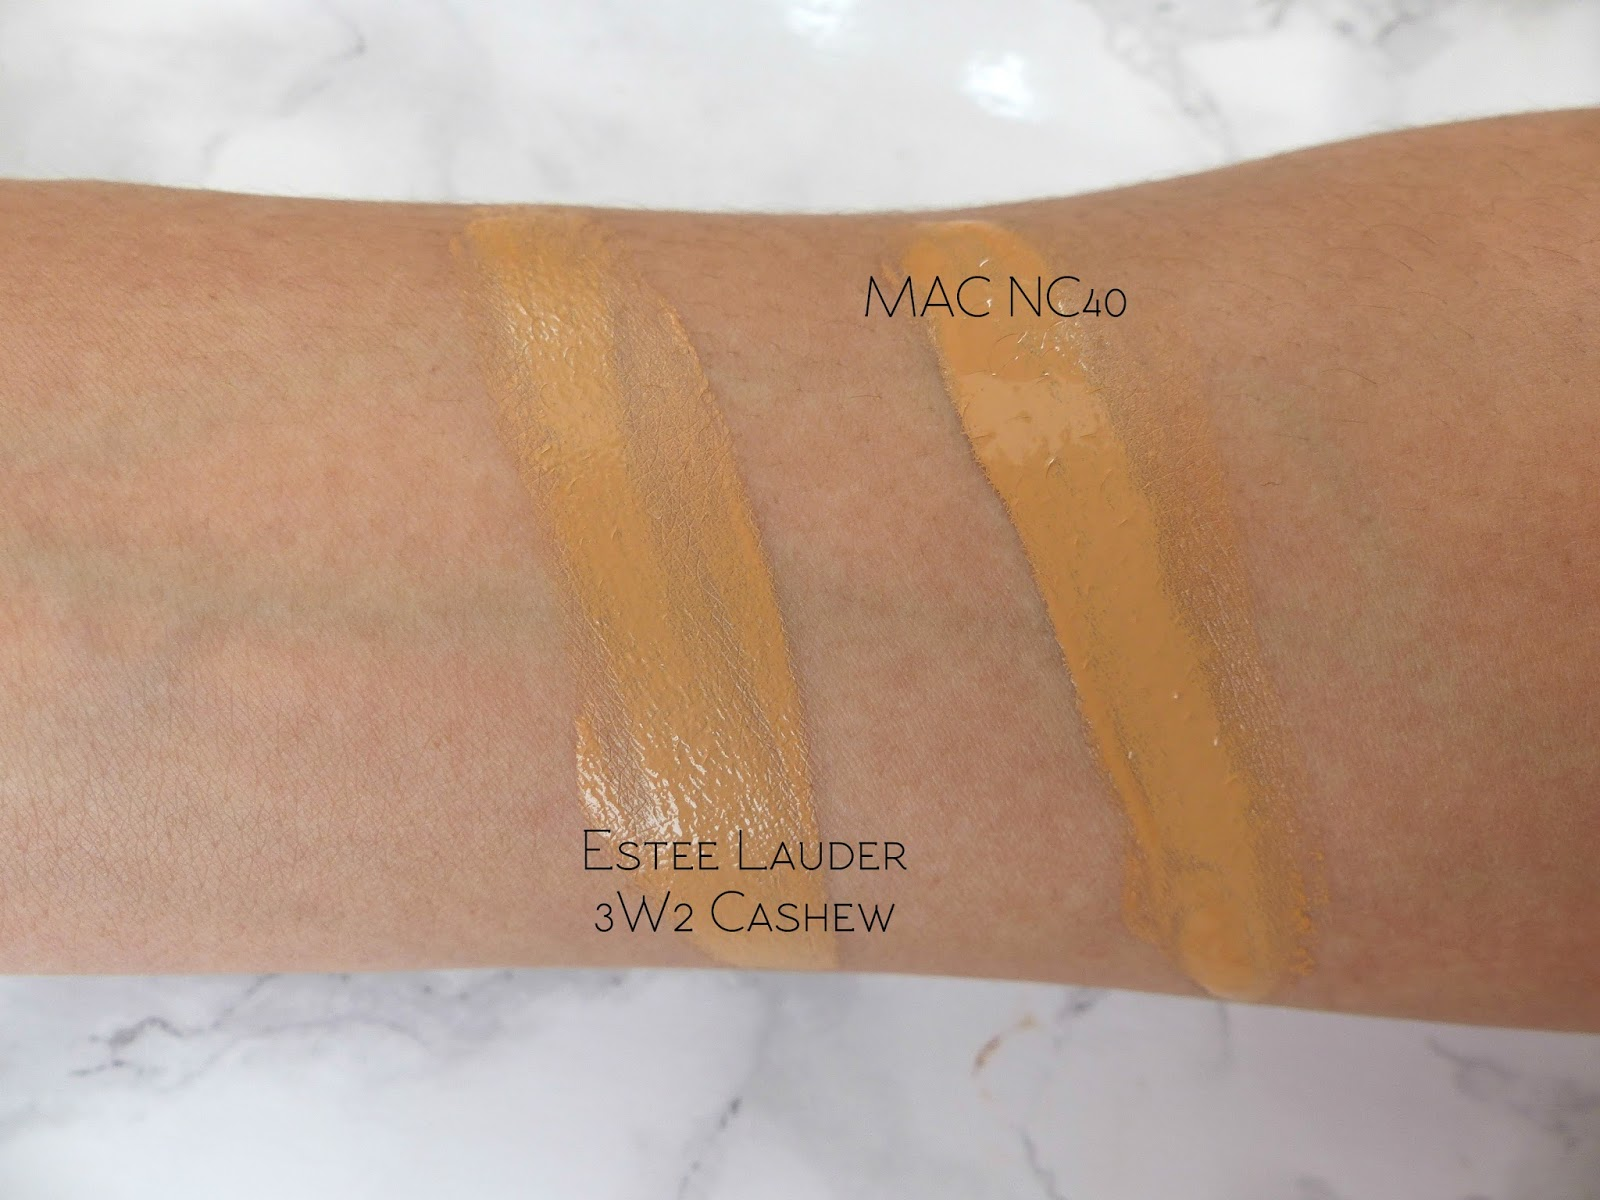 Mac Nc40 Studio Fix Fluid Foundation Dupes All In The Blush